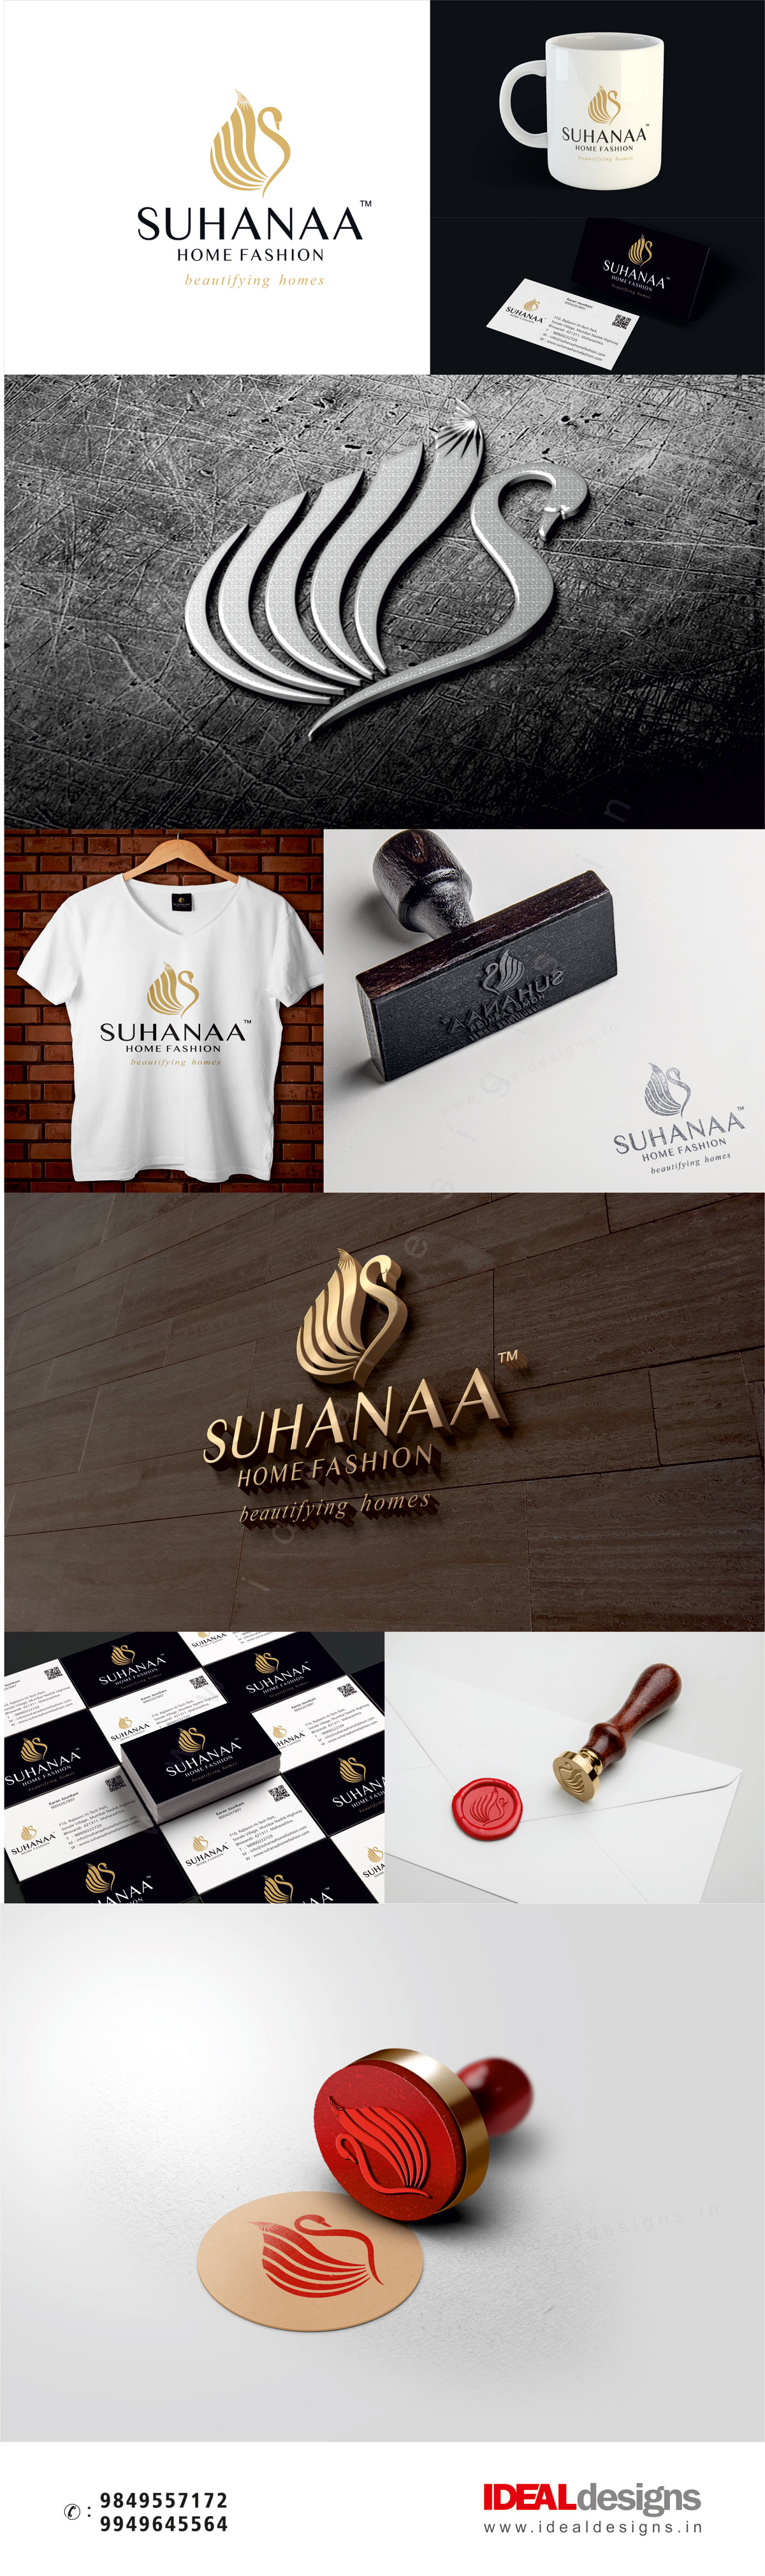 suhana-furniture-and-furnishings-branding-india,-professional-designs-hyderabad,-corporate-style-branidng-hyderabad - suhana